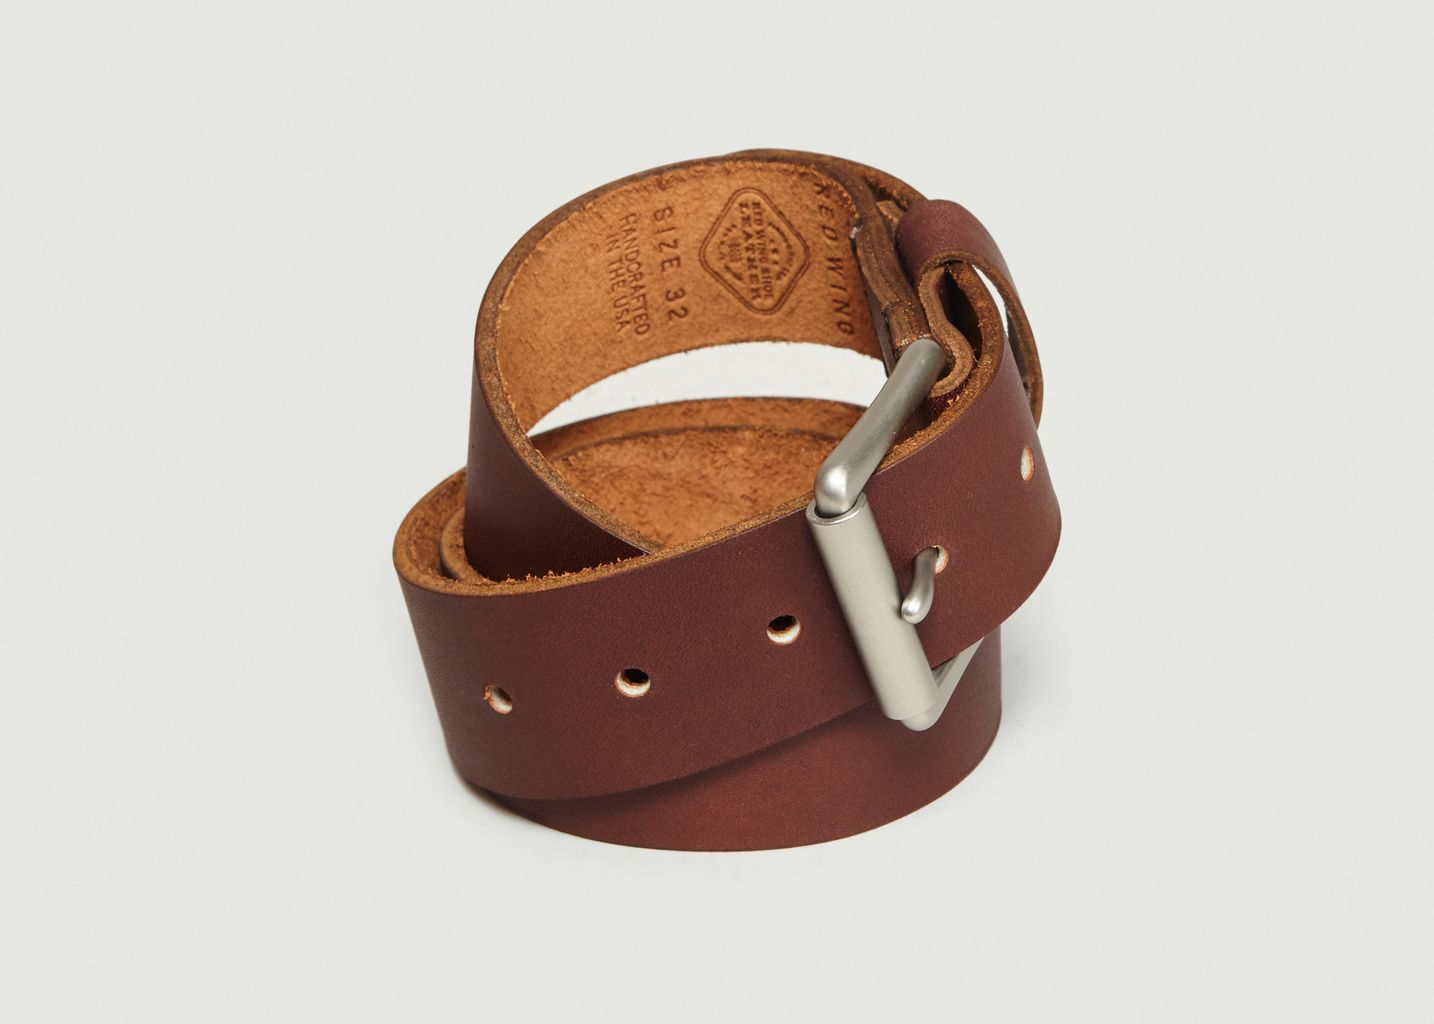 Ceinture En Cuir Pioneer - Red Wing Shoes